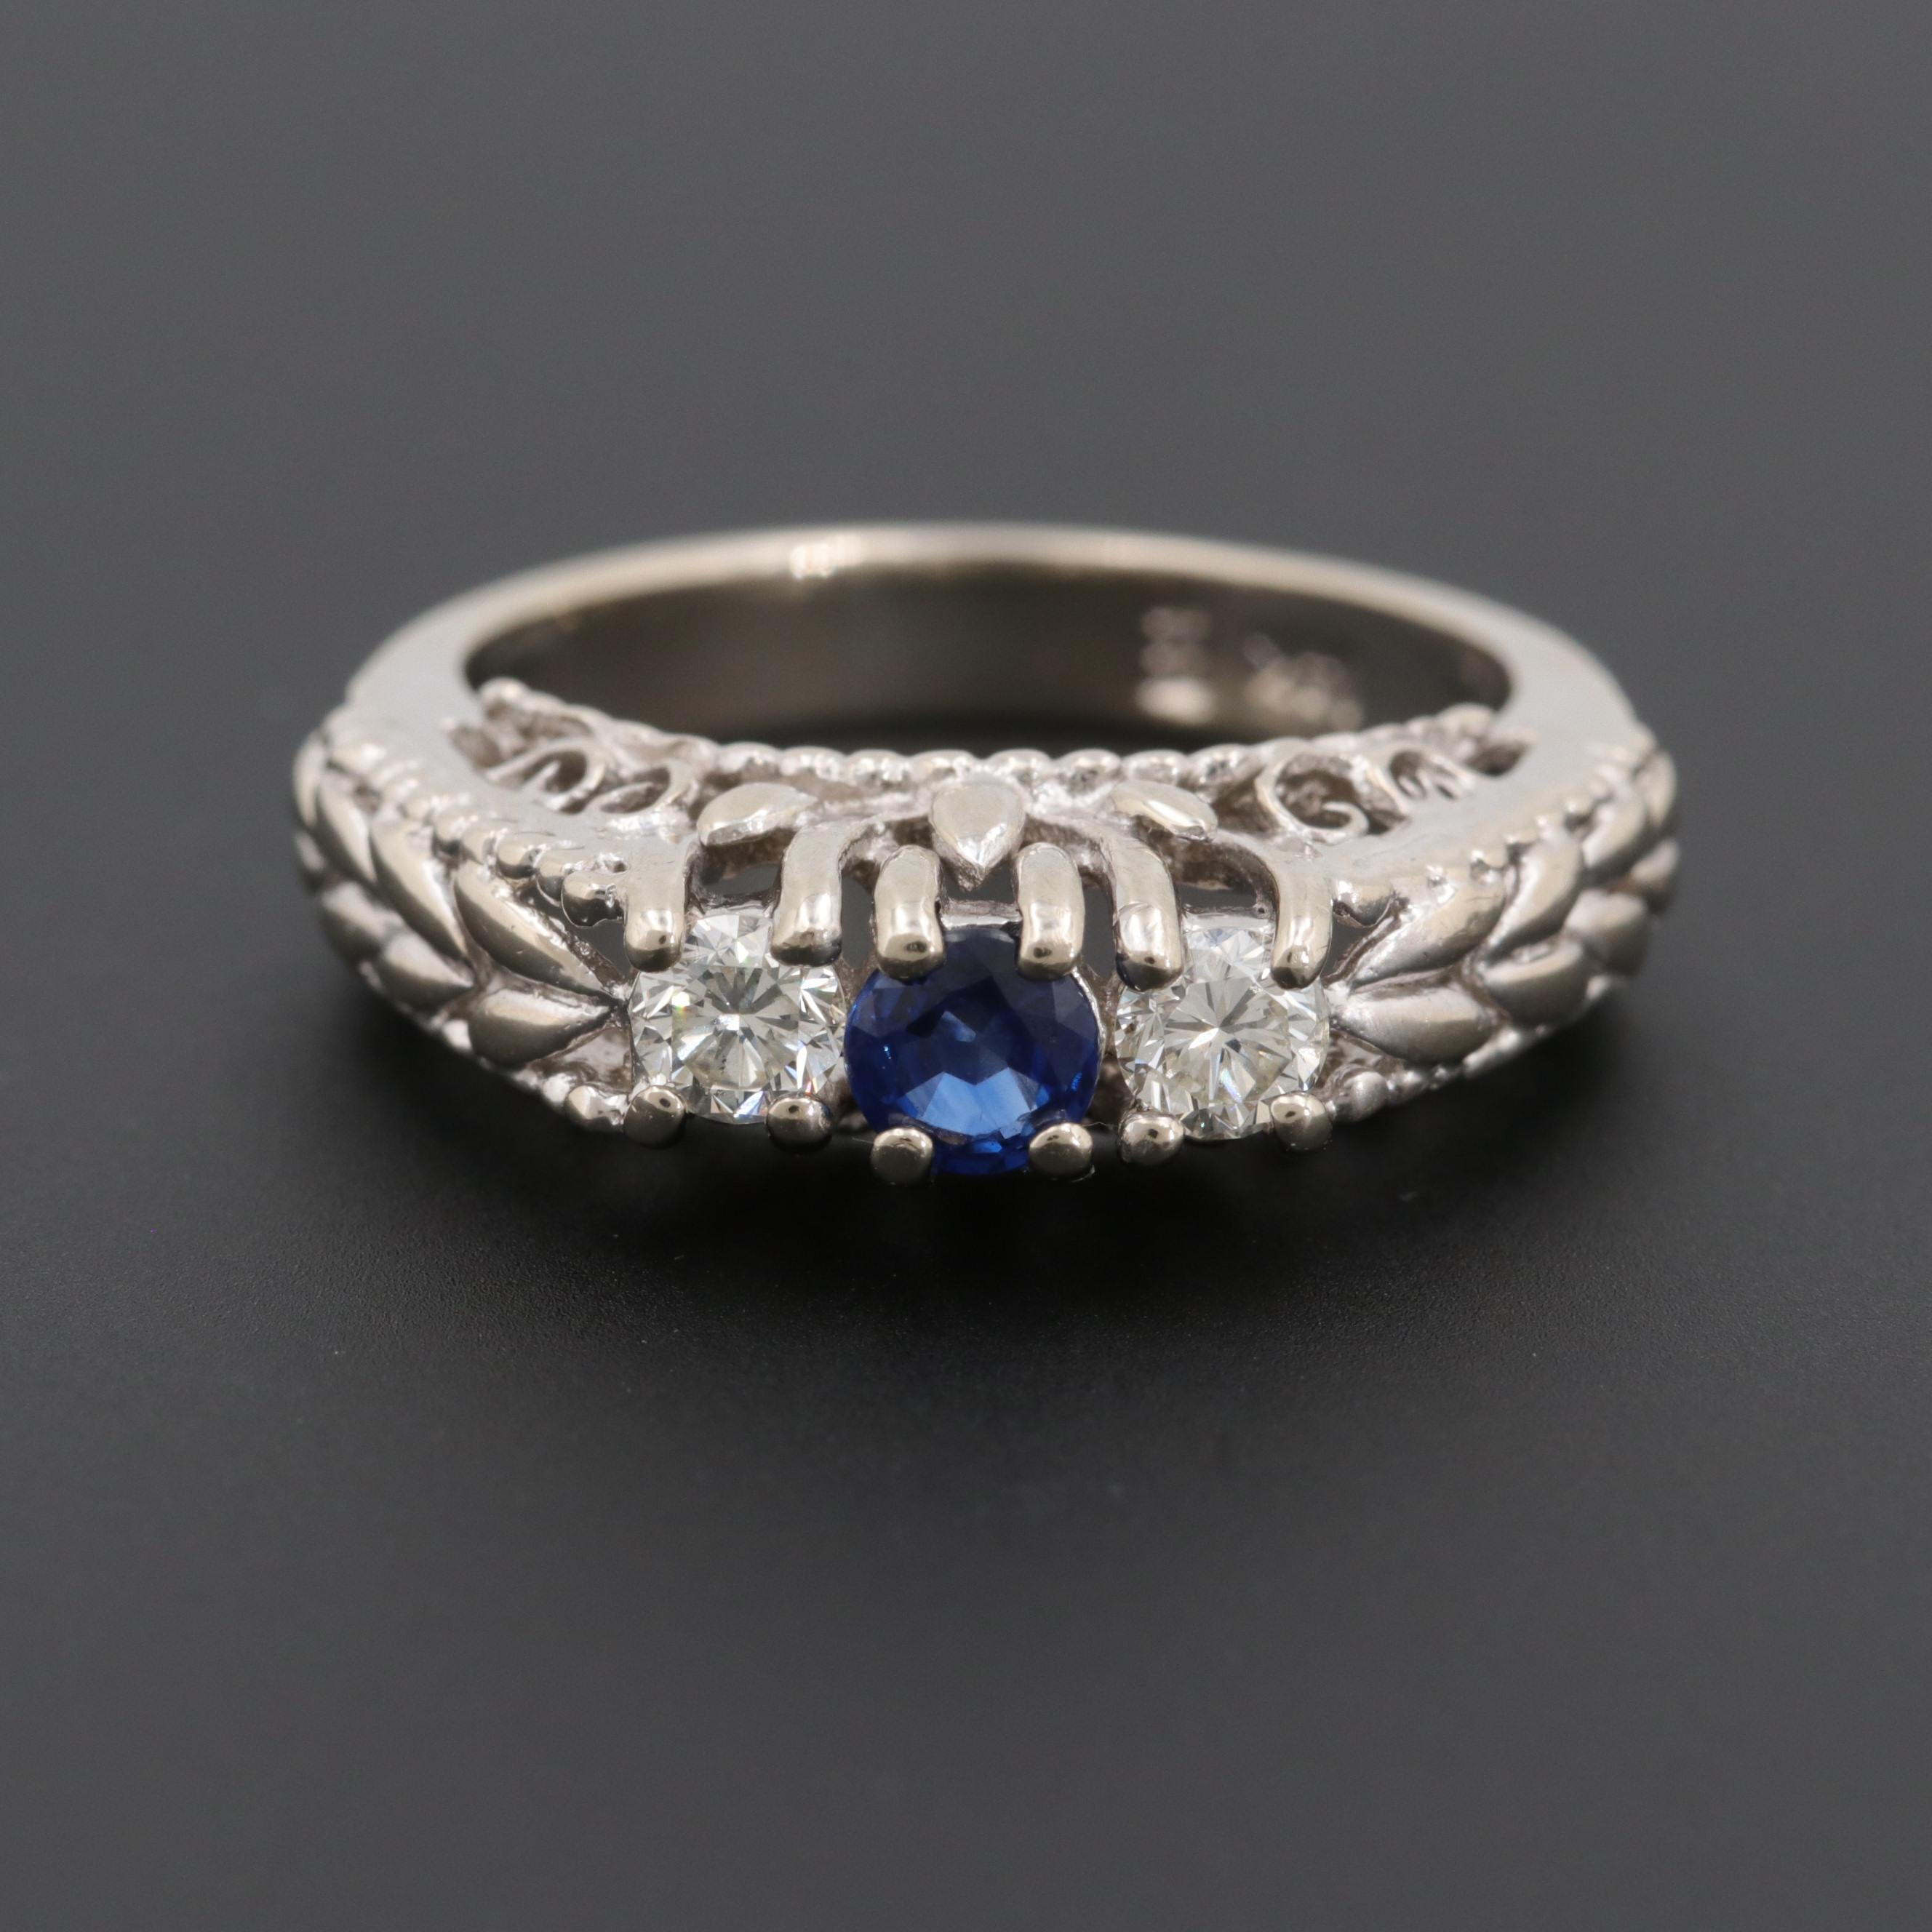 14K White Gold Blue Sapphire and Diamond Ring with Foliate and Scroll Mounting